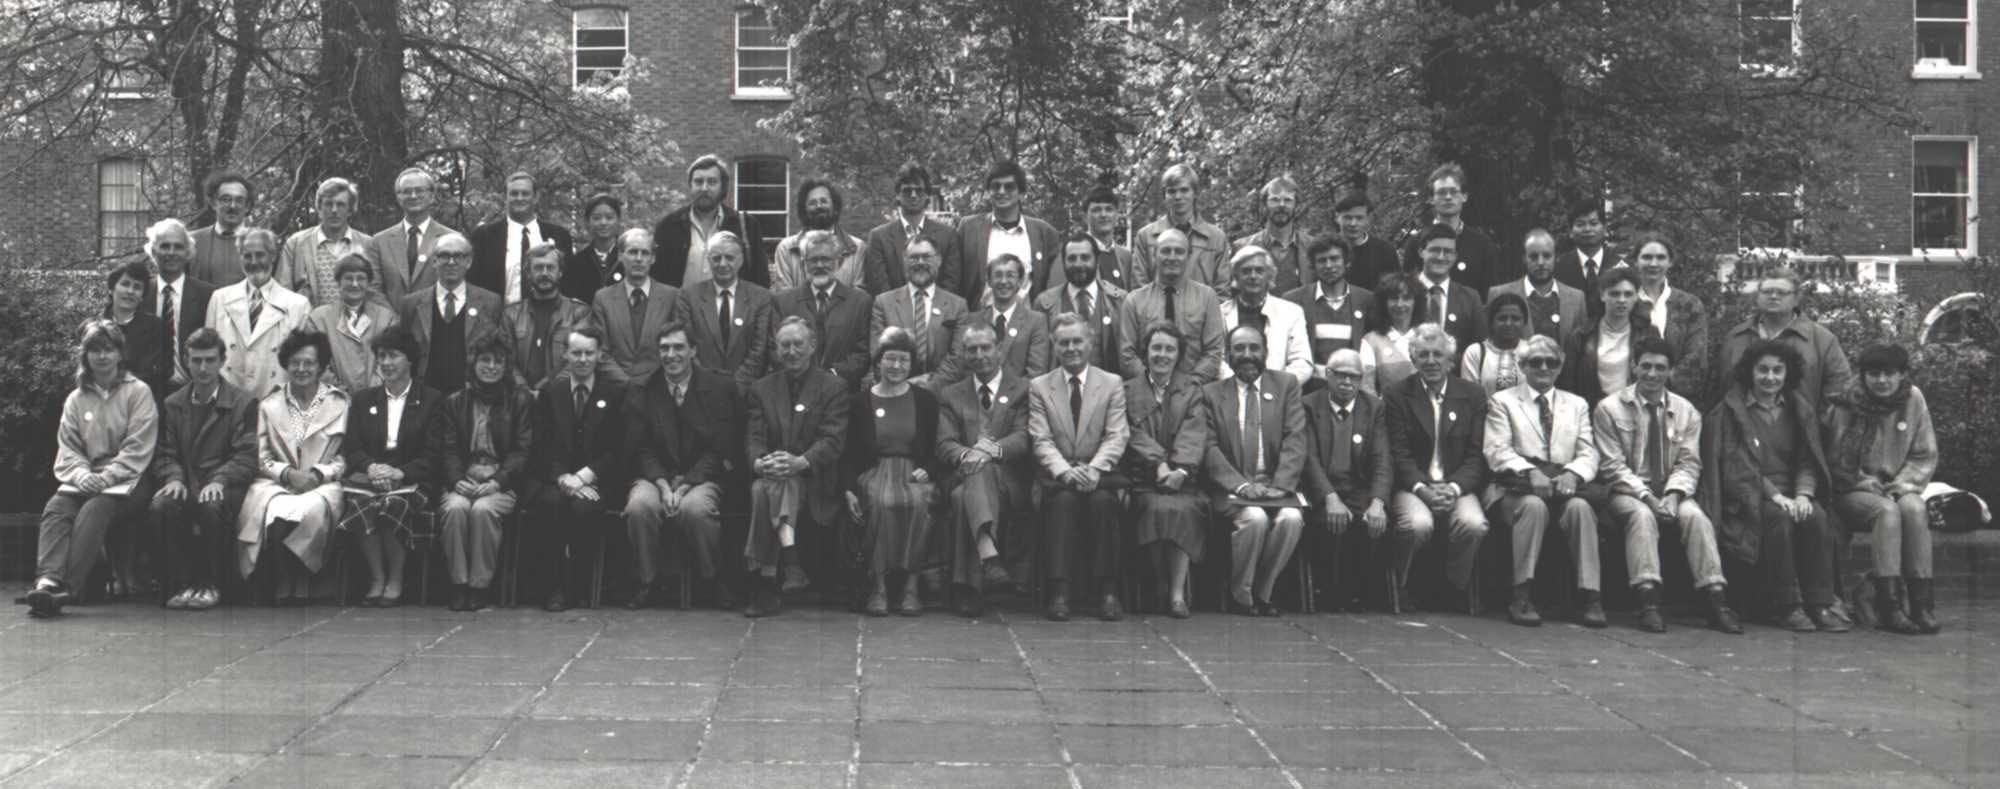 SVPCA Group Group Photo - 1986